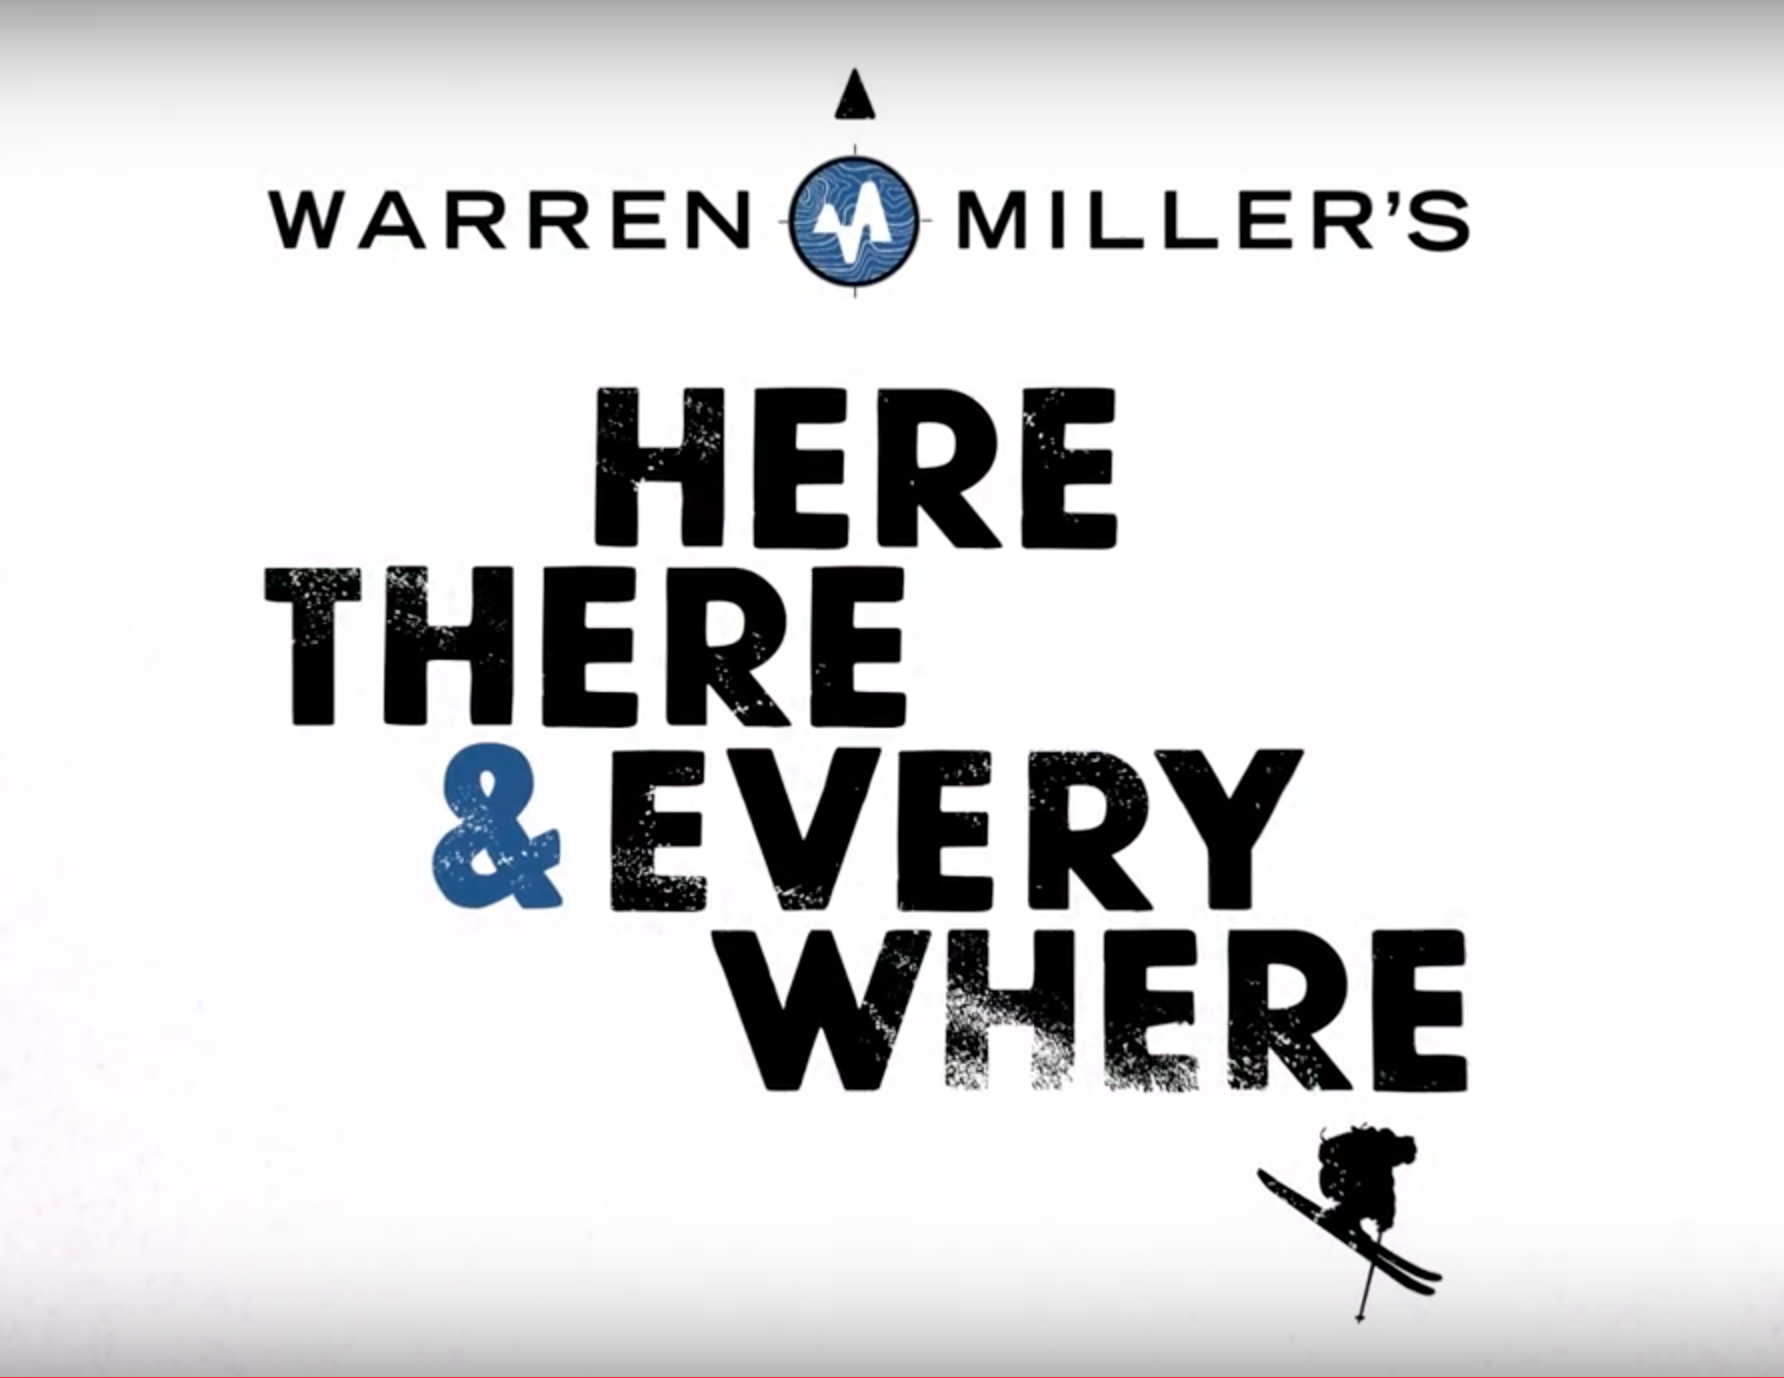 Win two tickets from Canadian Adventure Company to Warren Miller's